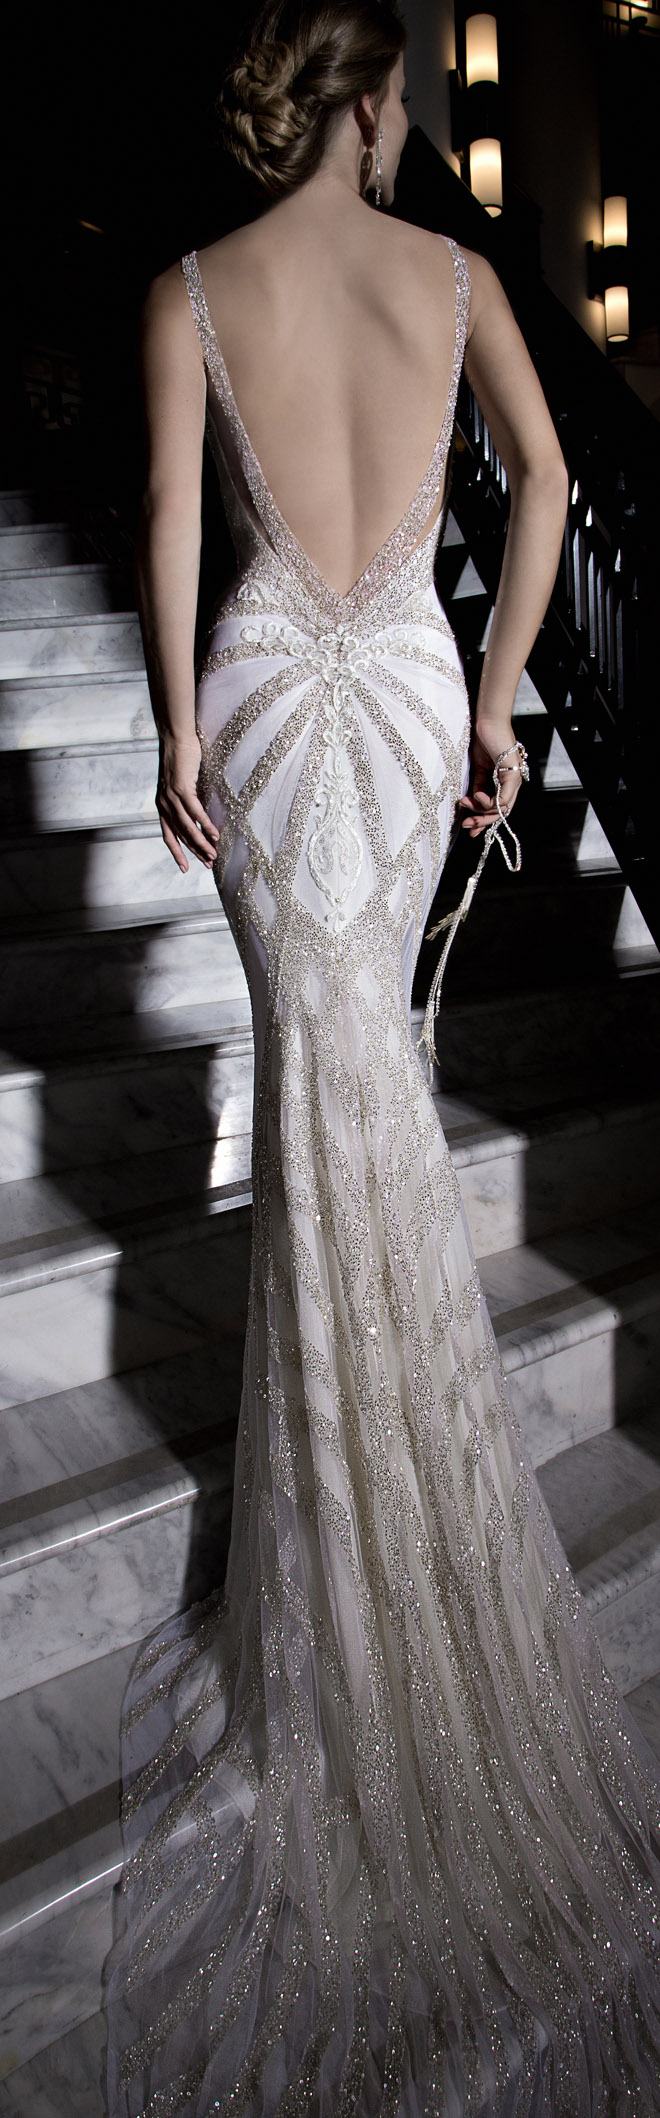 Galia-Lahav-Tales-of-the-Jazz-Age-nupcial-collection-Katharina Voltar